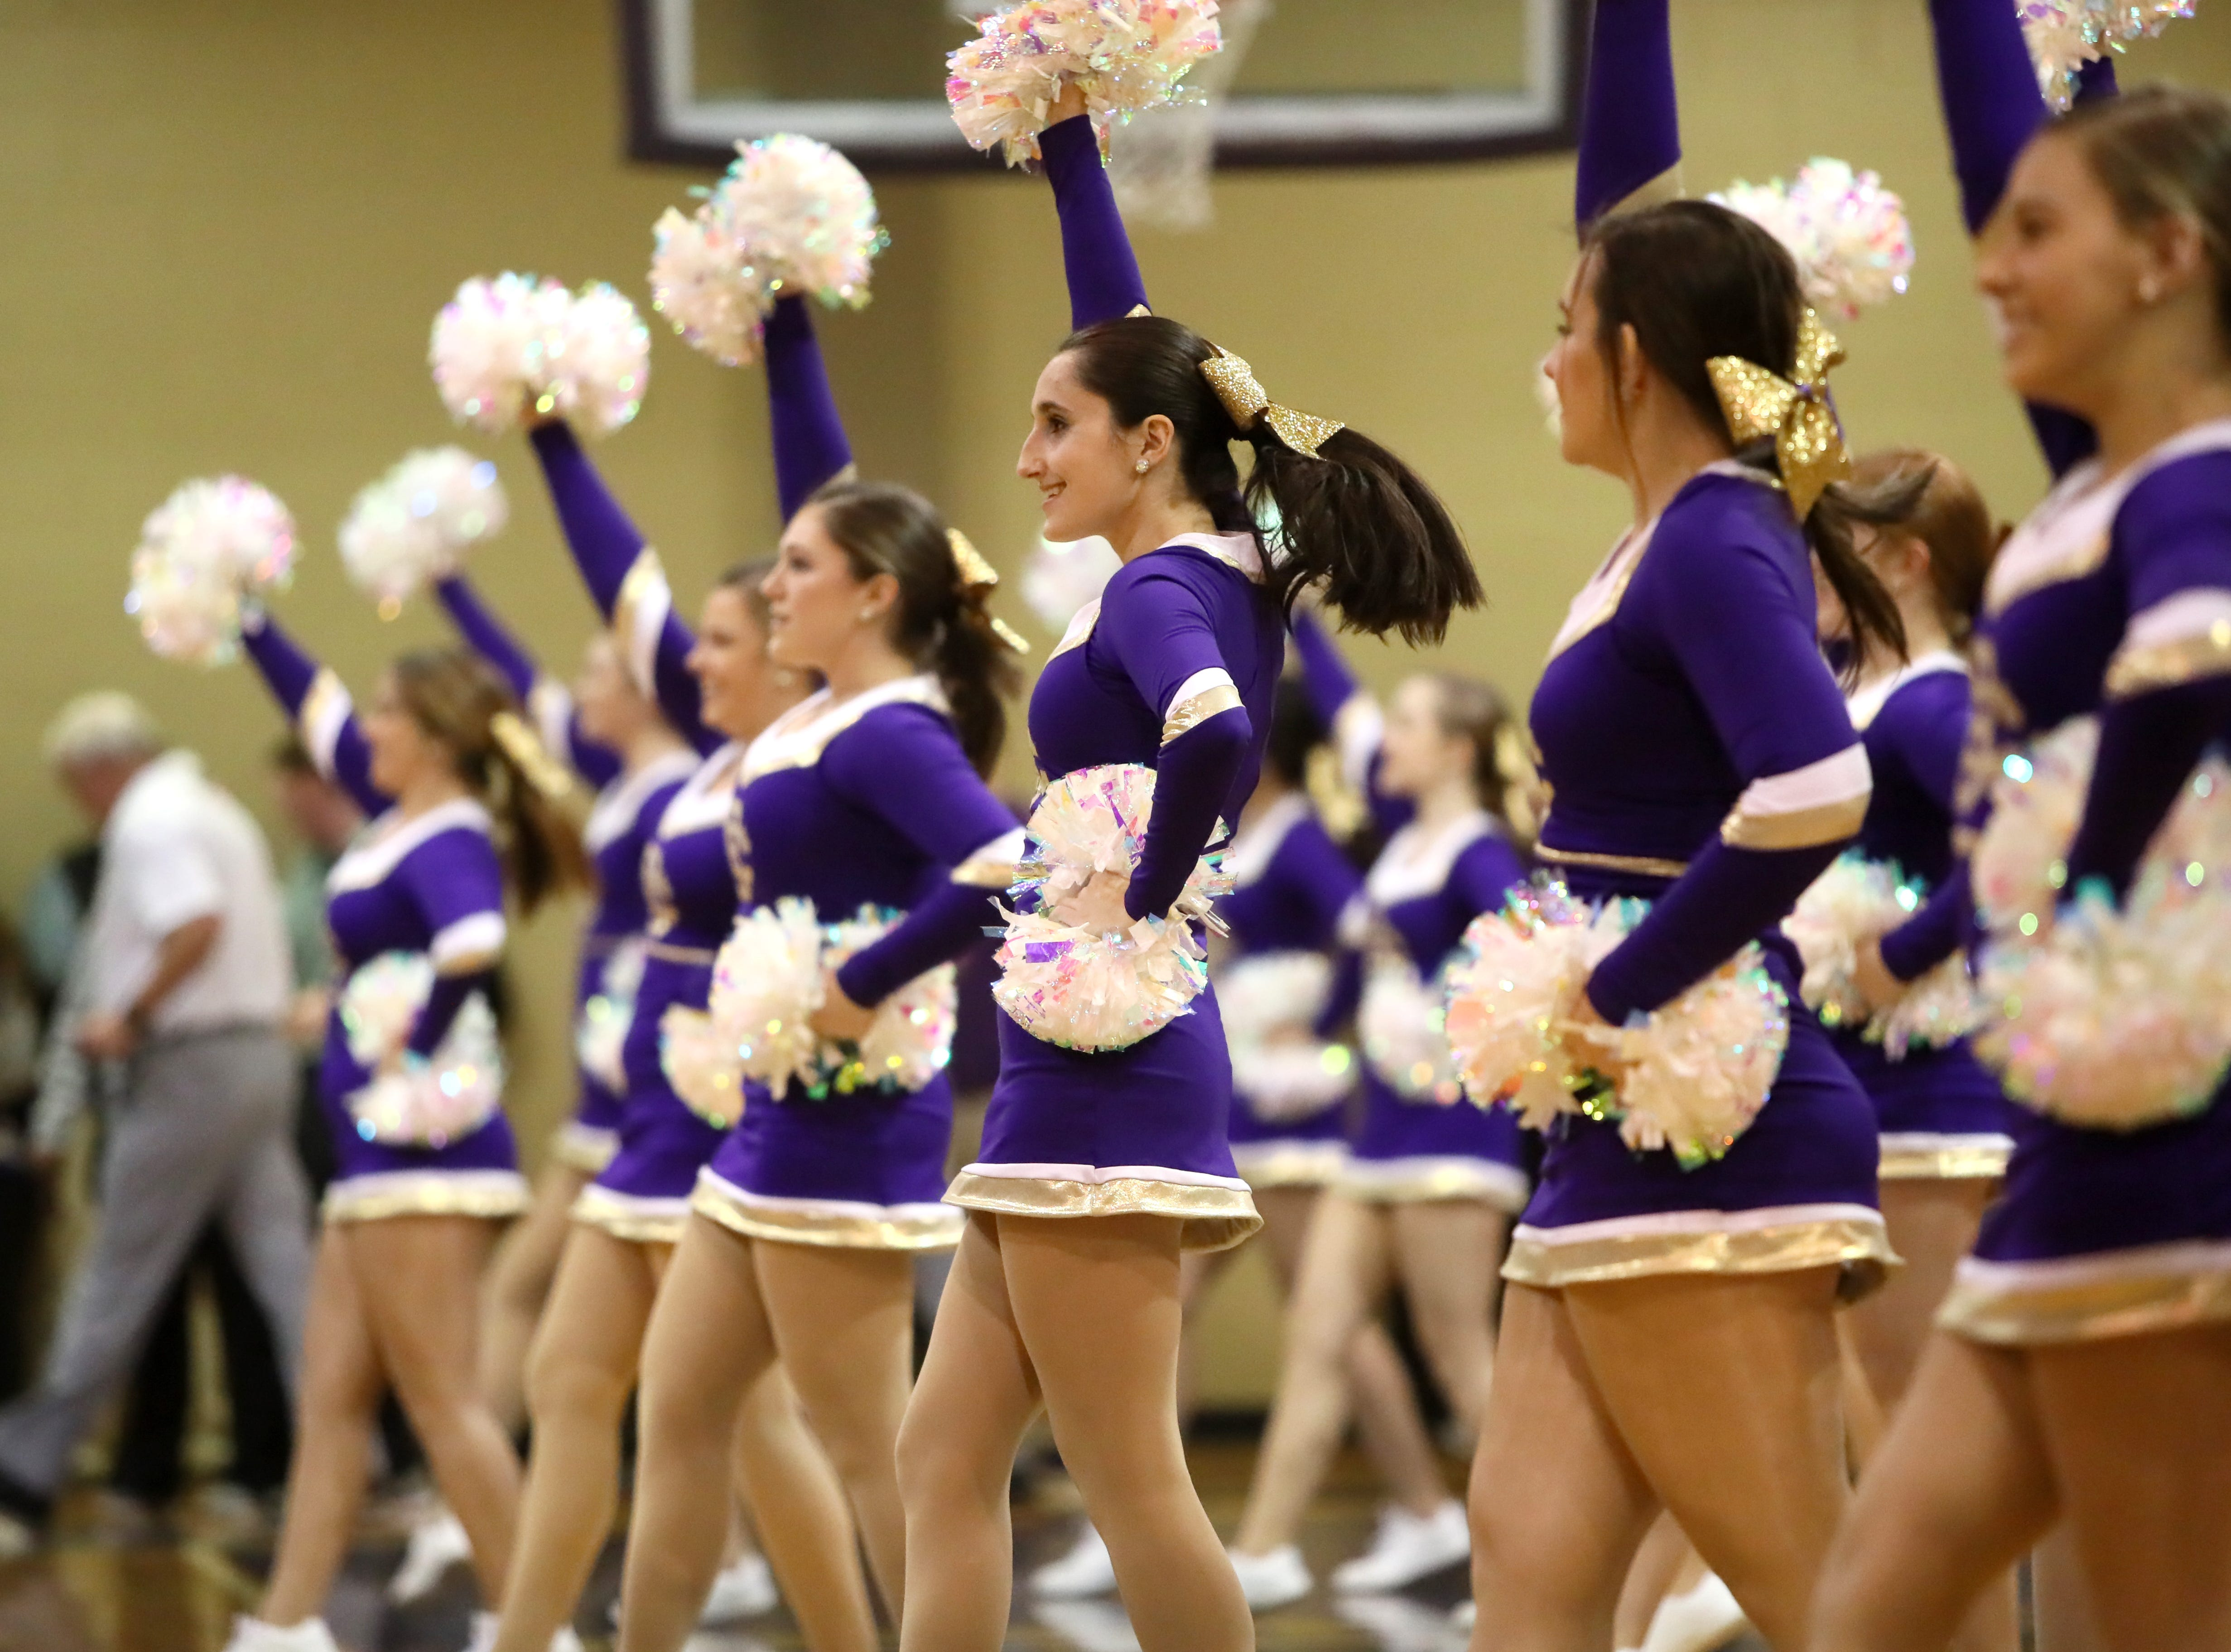 Christian Brothers' cheerleaders perform during halftime during their game against Briarcrest at Christian Brothers High School on Friday, Jan. 11, 2019.